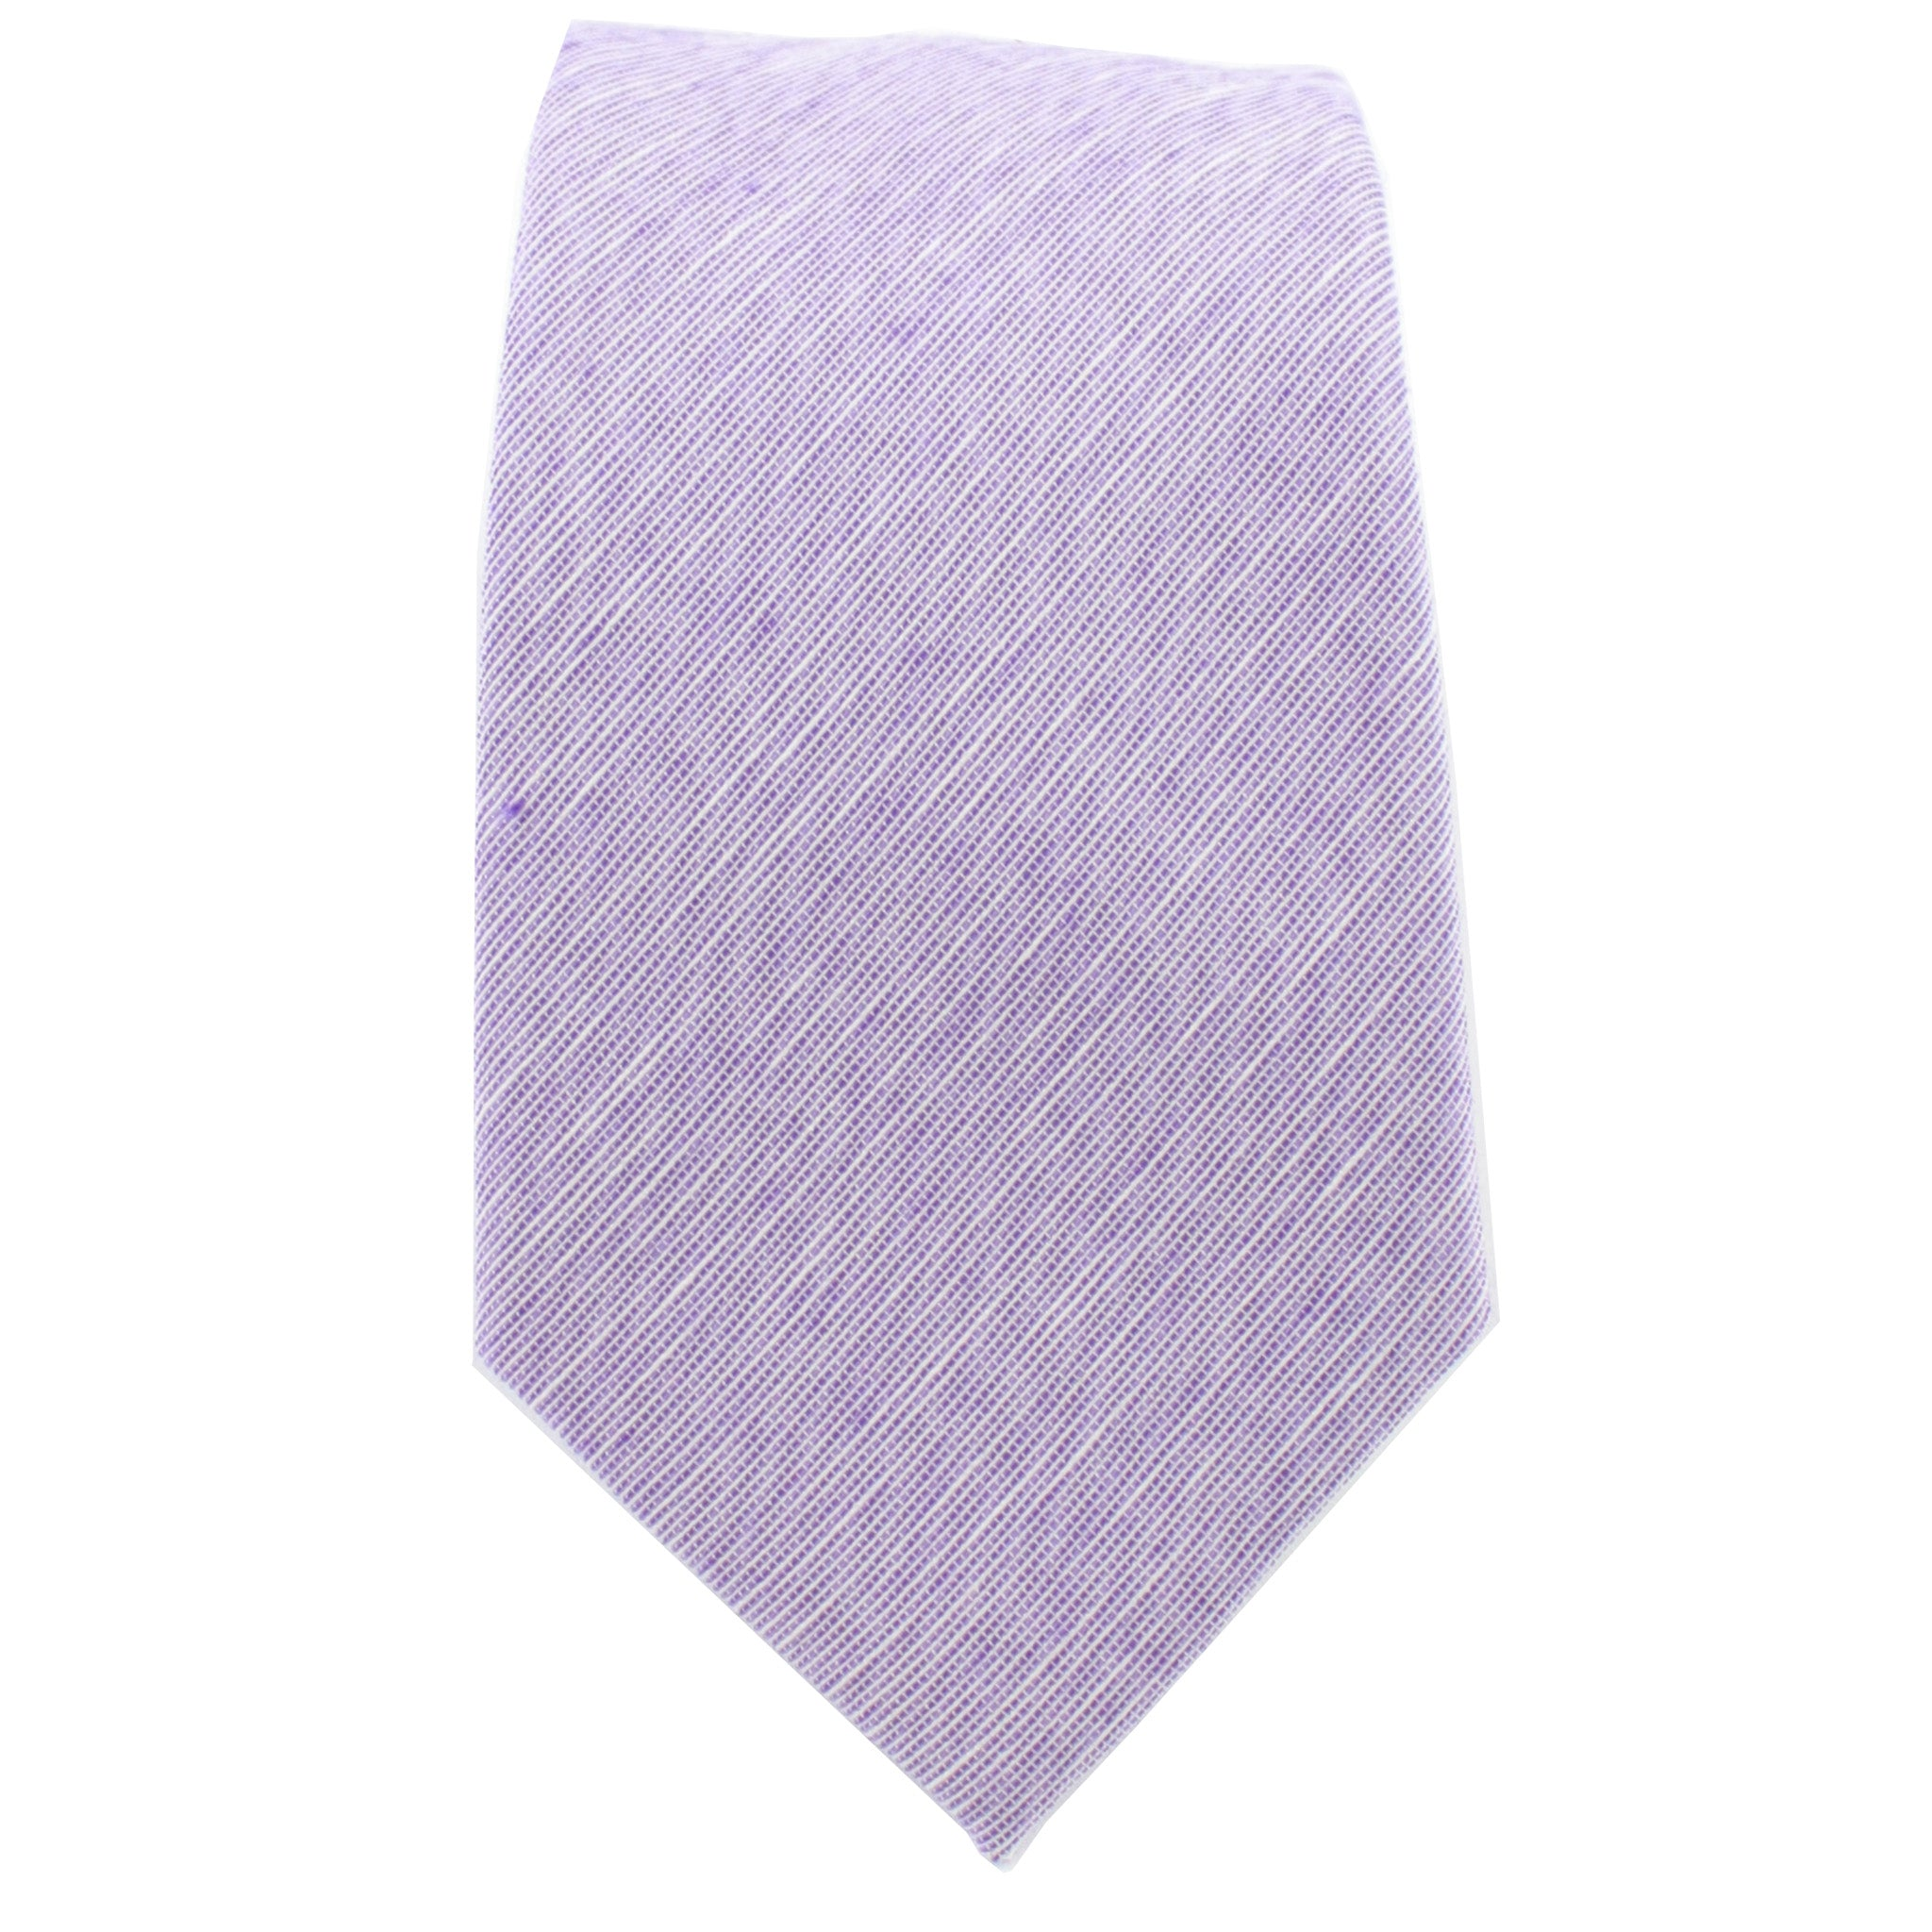 Light Purple Linen Tie from DIBI